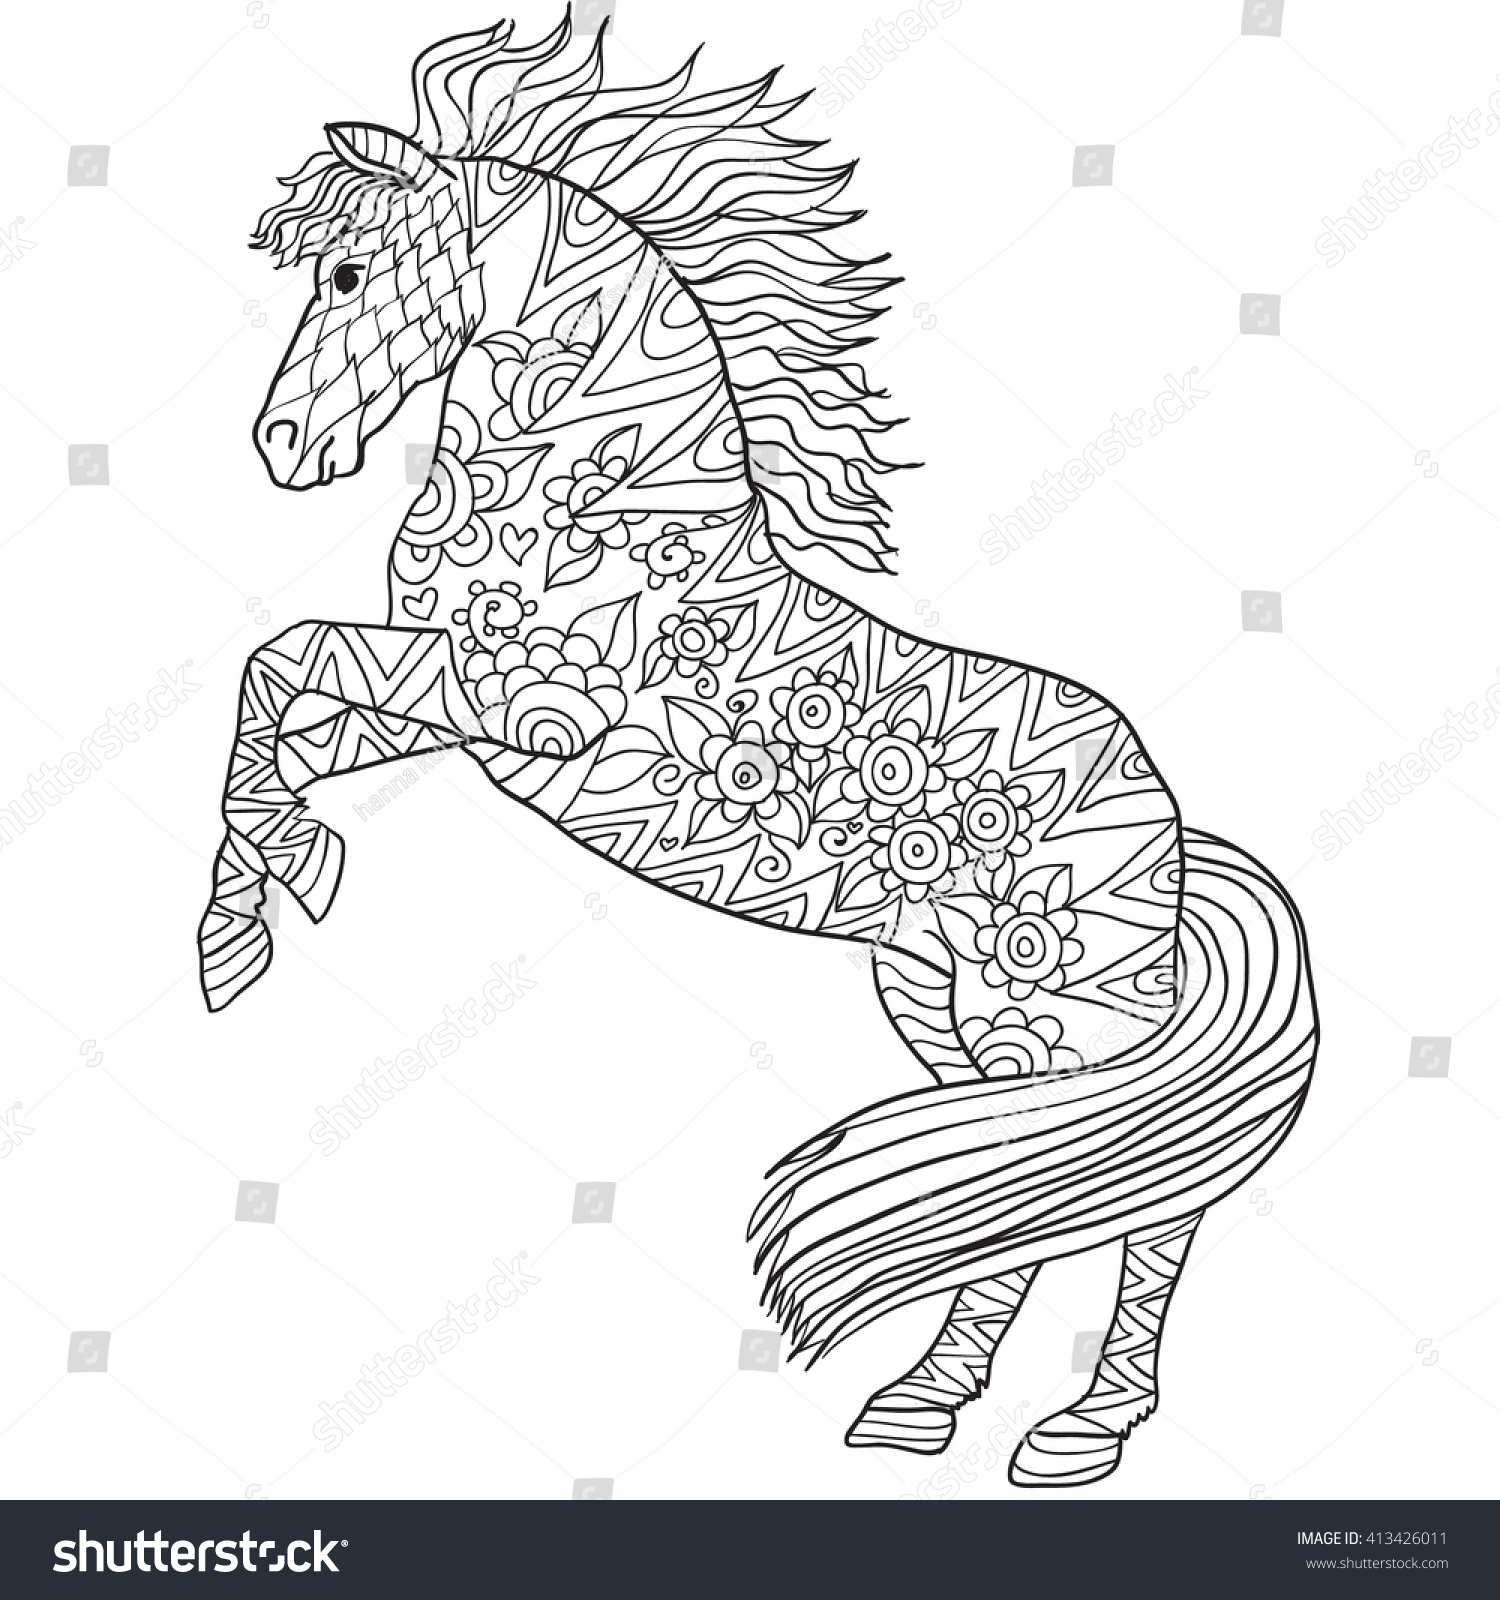 free animal coloring pages for adults coloring pages picture 1 ...